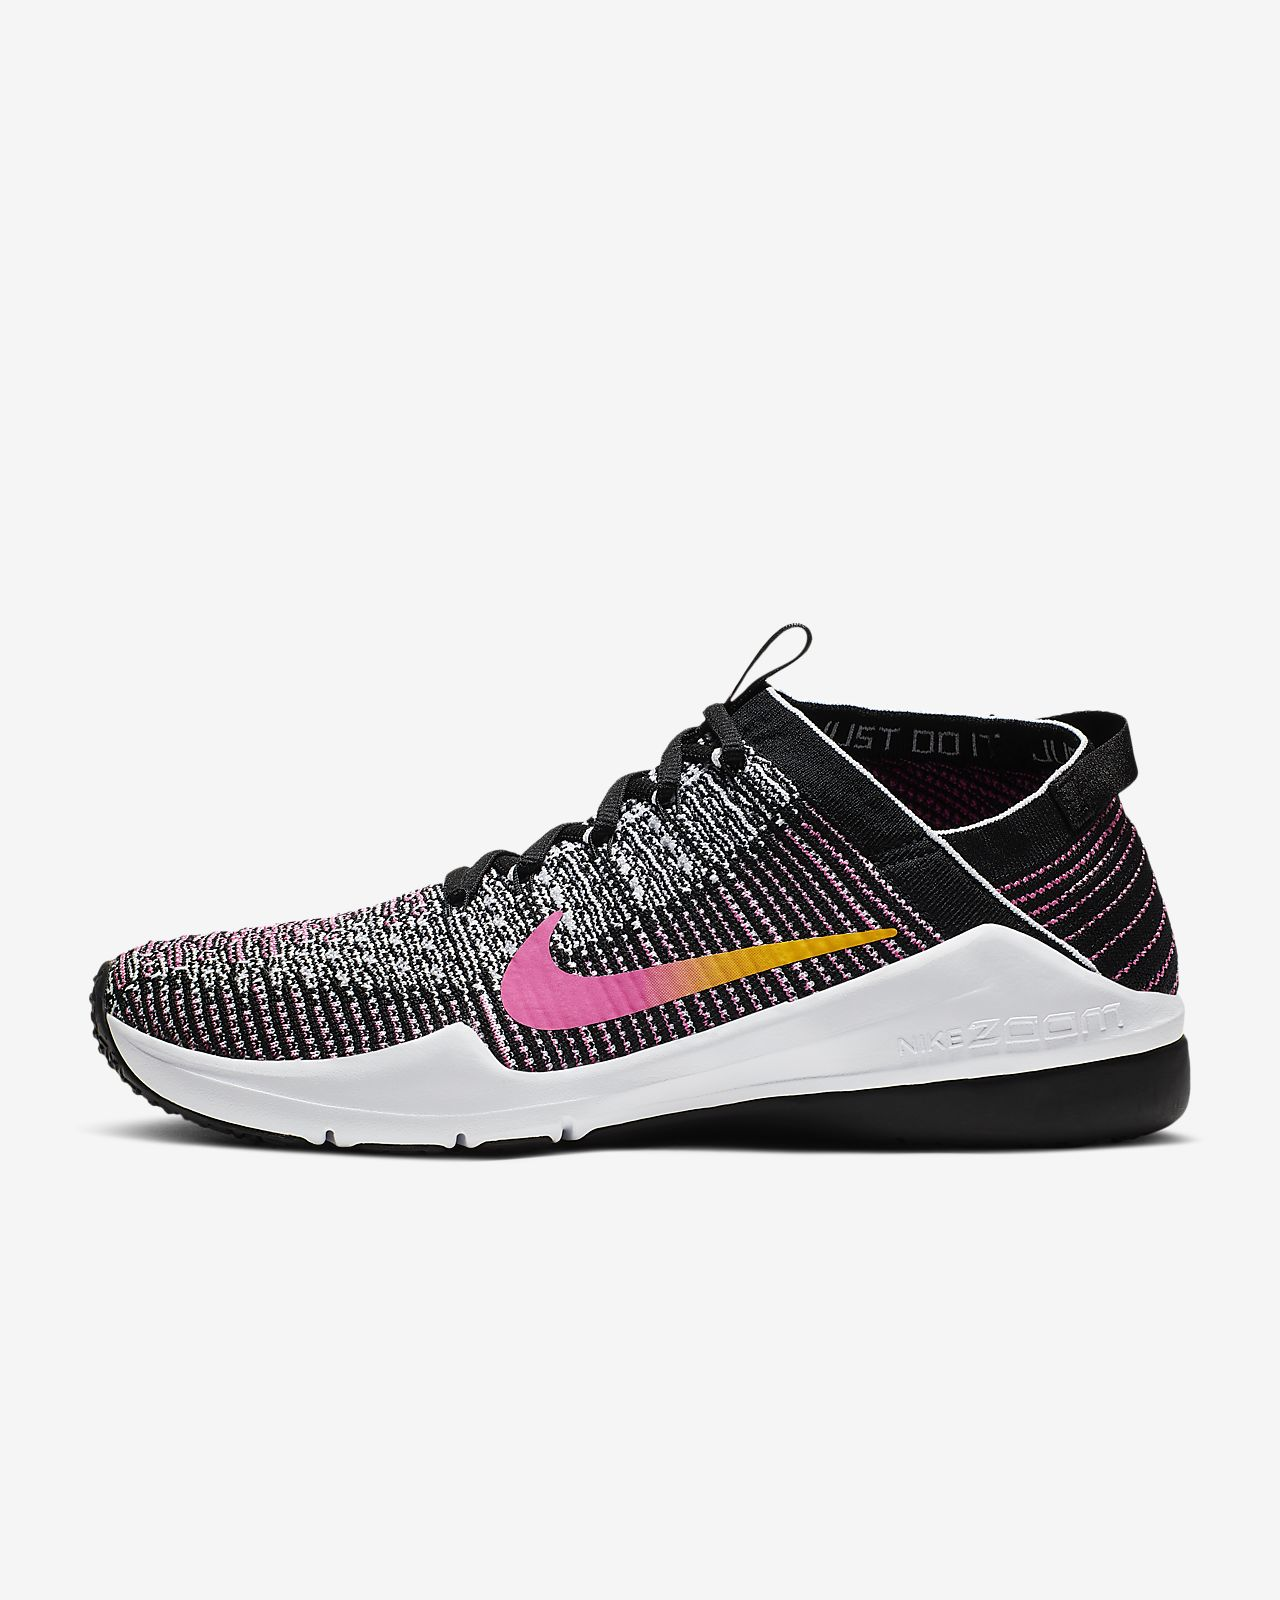 cb07a69f5df9 ... Nike Air Zoom Fearless Flyknit 2 Women s Gym Training Boxing Shoe. Low  Resolution undefined